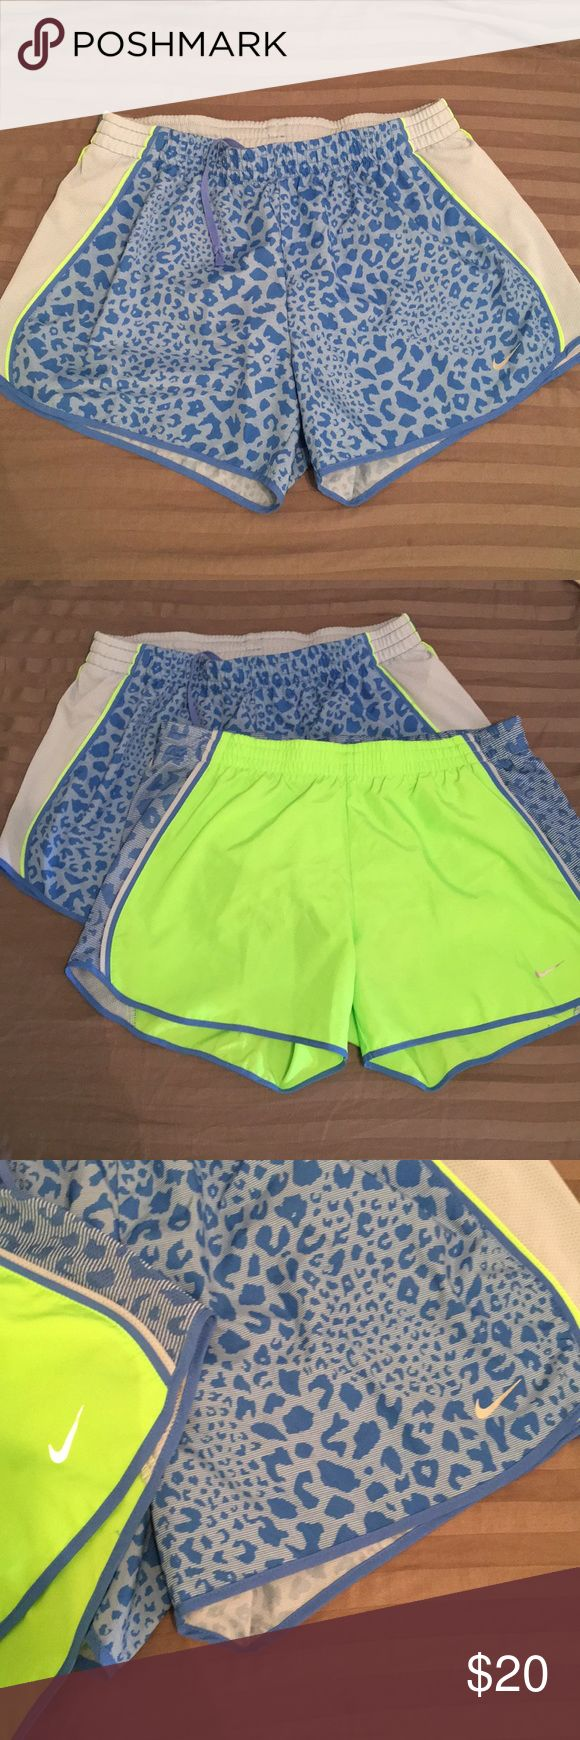 Nike Dry Fit Shorts ✨Bundle✨ One pair of neon green with blue cheetah mesh and one pair of blue cheetah with light blue mesh and neon green piping. These are barely worn, never really fit right... they have sat in my closet long enough ! Price is for both pair ! Please note the tiny stain on the back elastic of the green pair ! See pics ✨💕 Nike Shorts